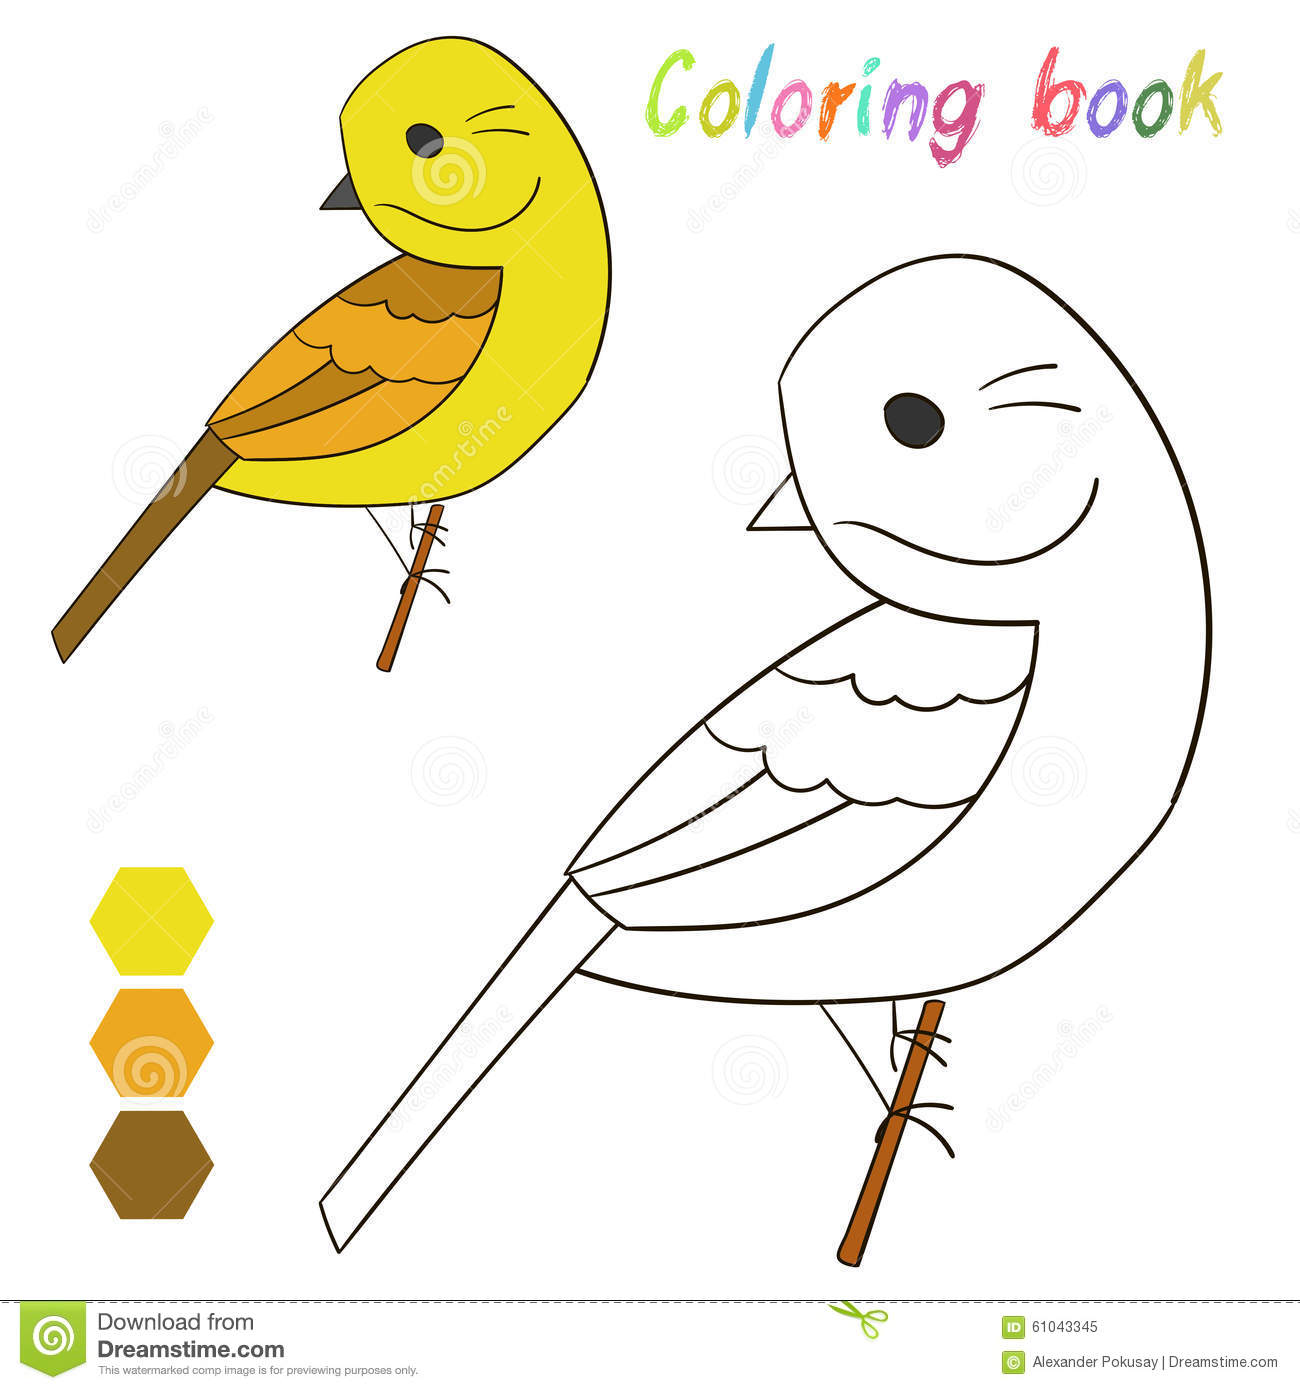 yellowhammer bird coloring pages - photo #45